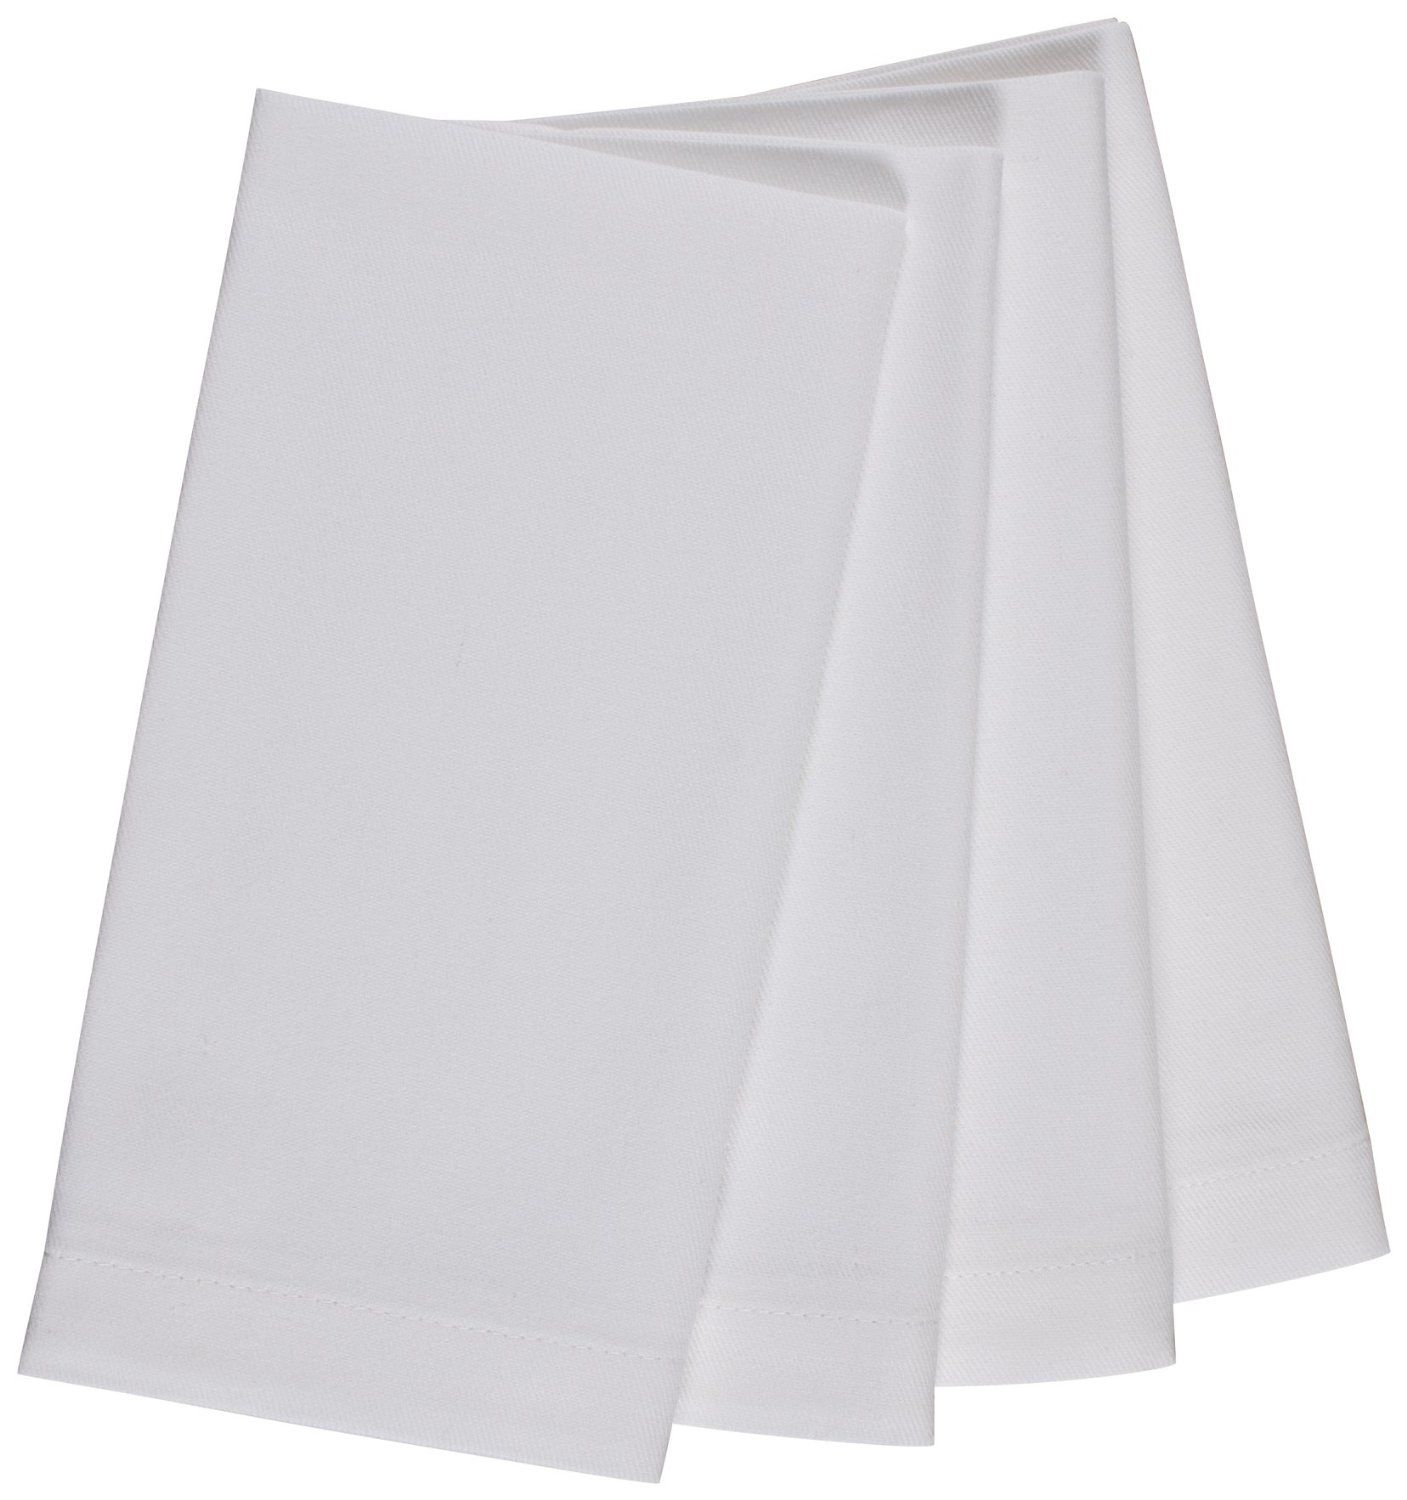 White Cloth Napkins The Catering Hire Company